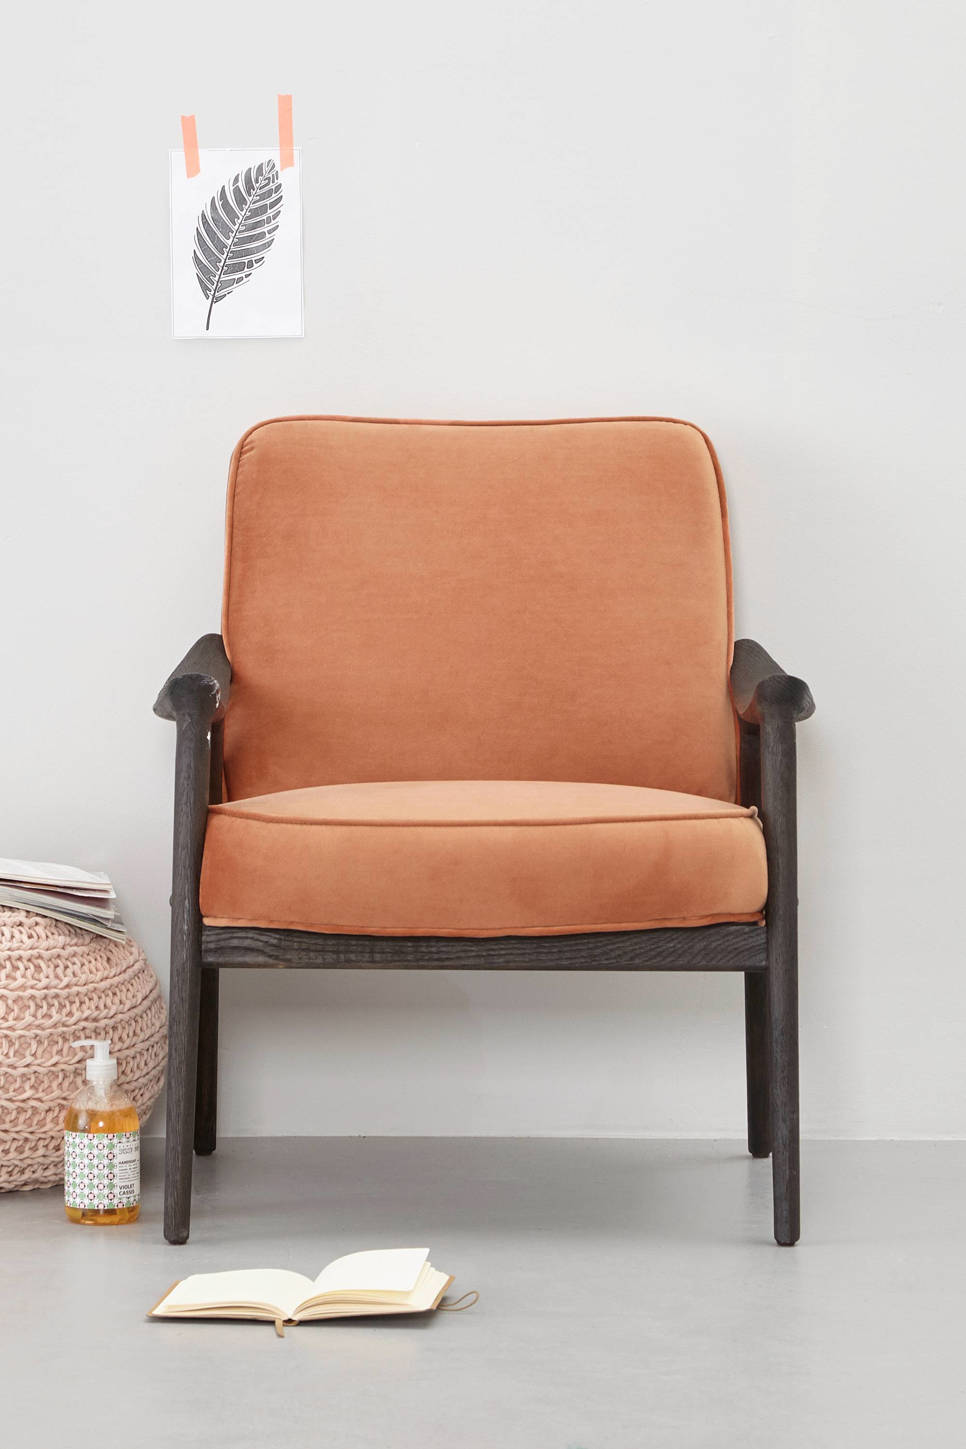 whkmp's own fauteuil Aarhus , Zalm